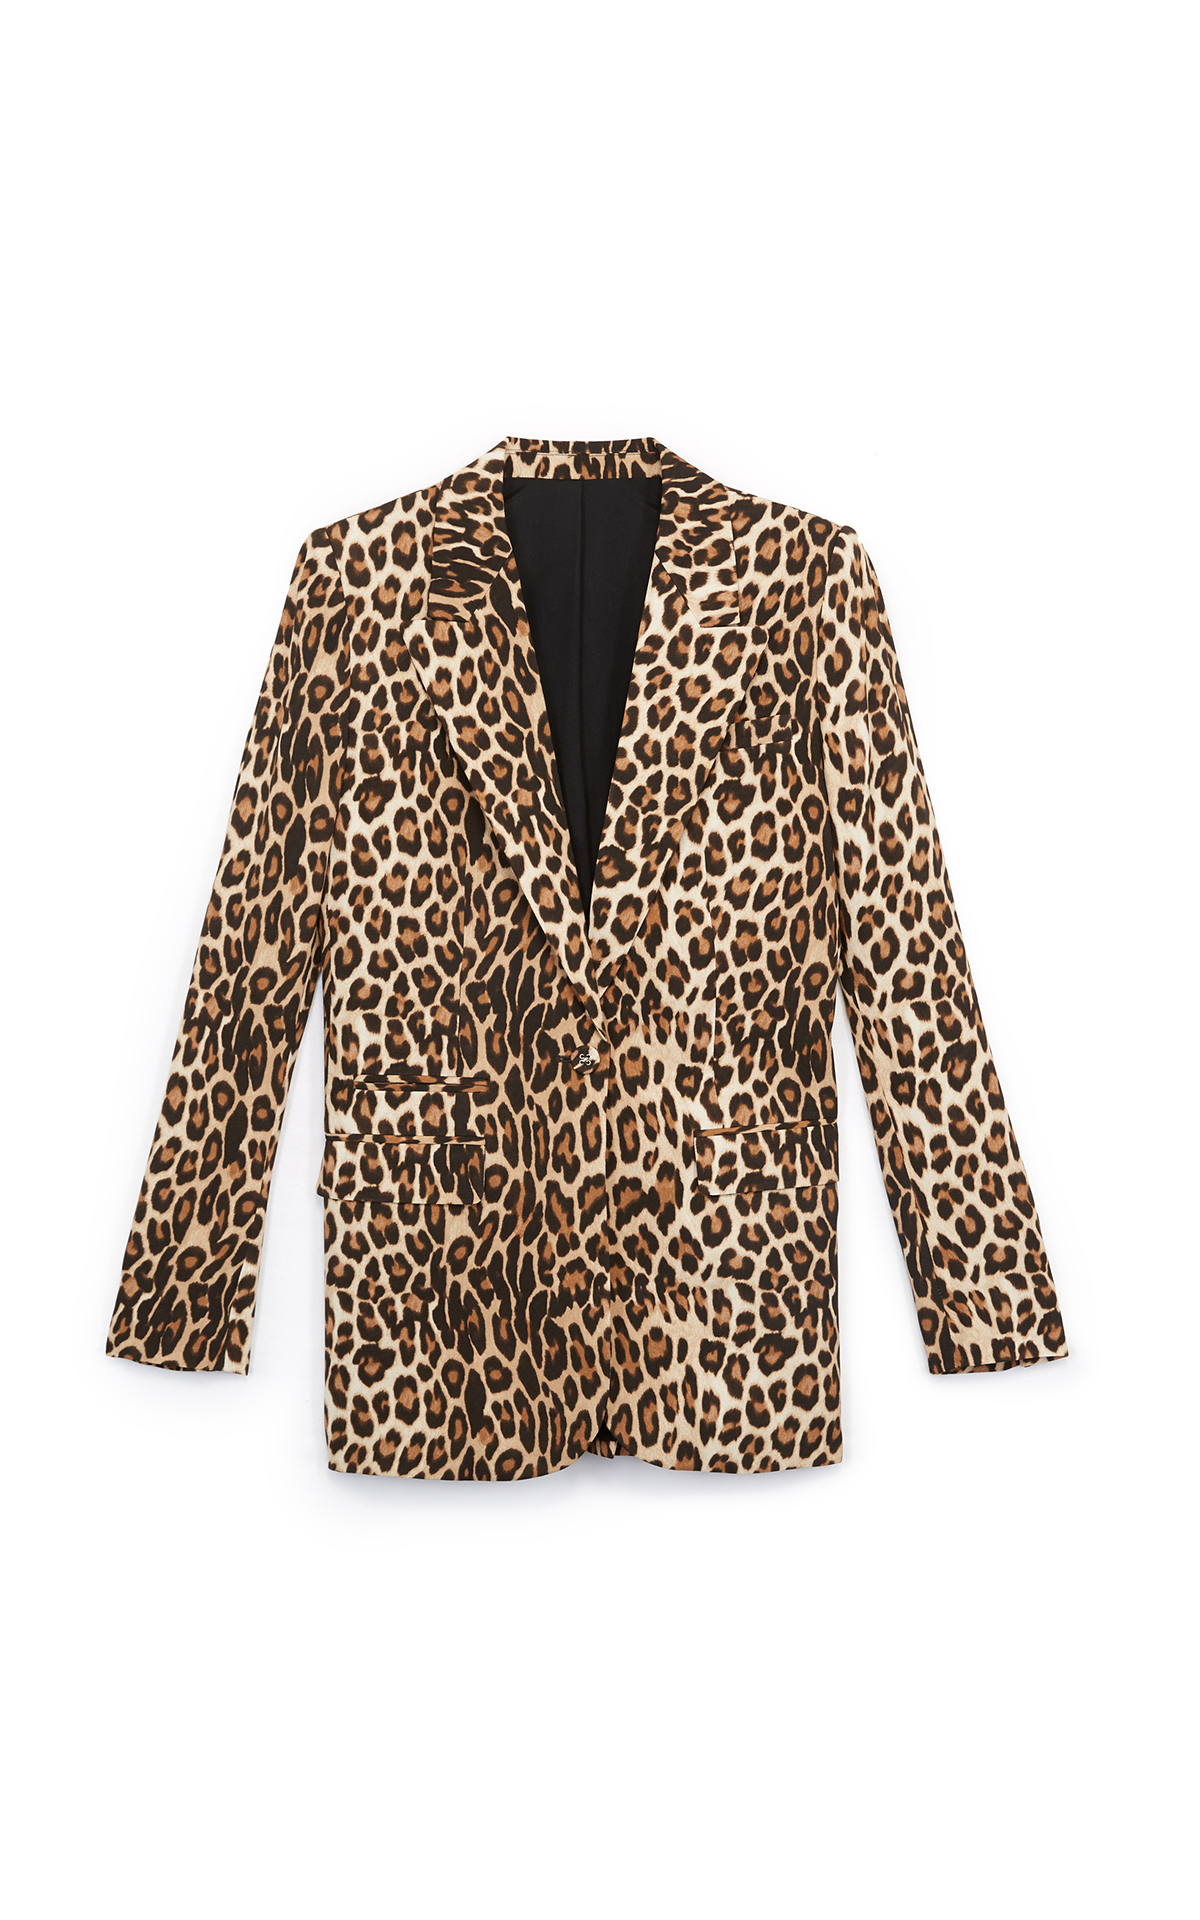 Leopard print blazer The Kooples